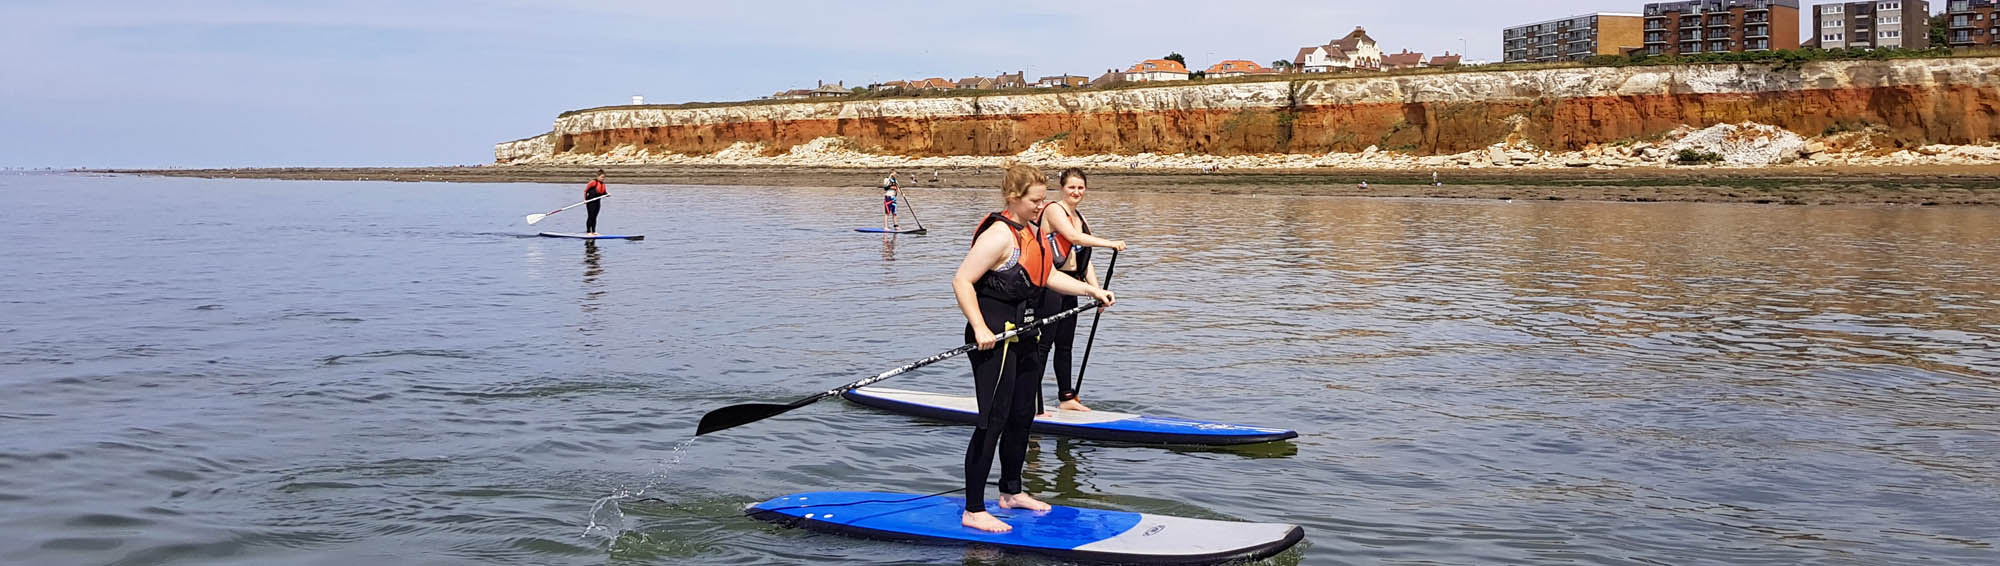 Paddleboarding by Hunstanton Cliffs